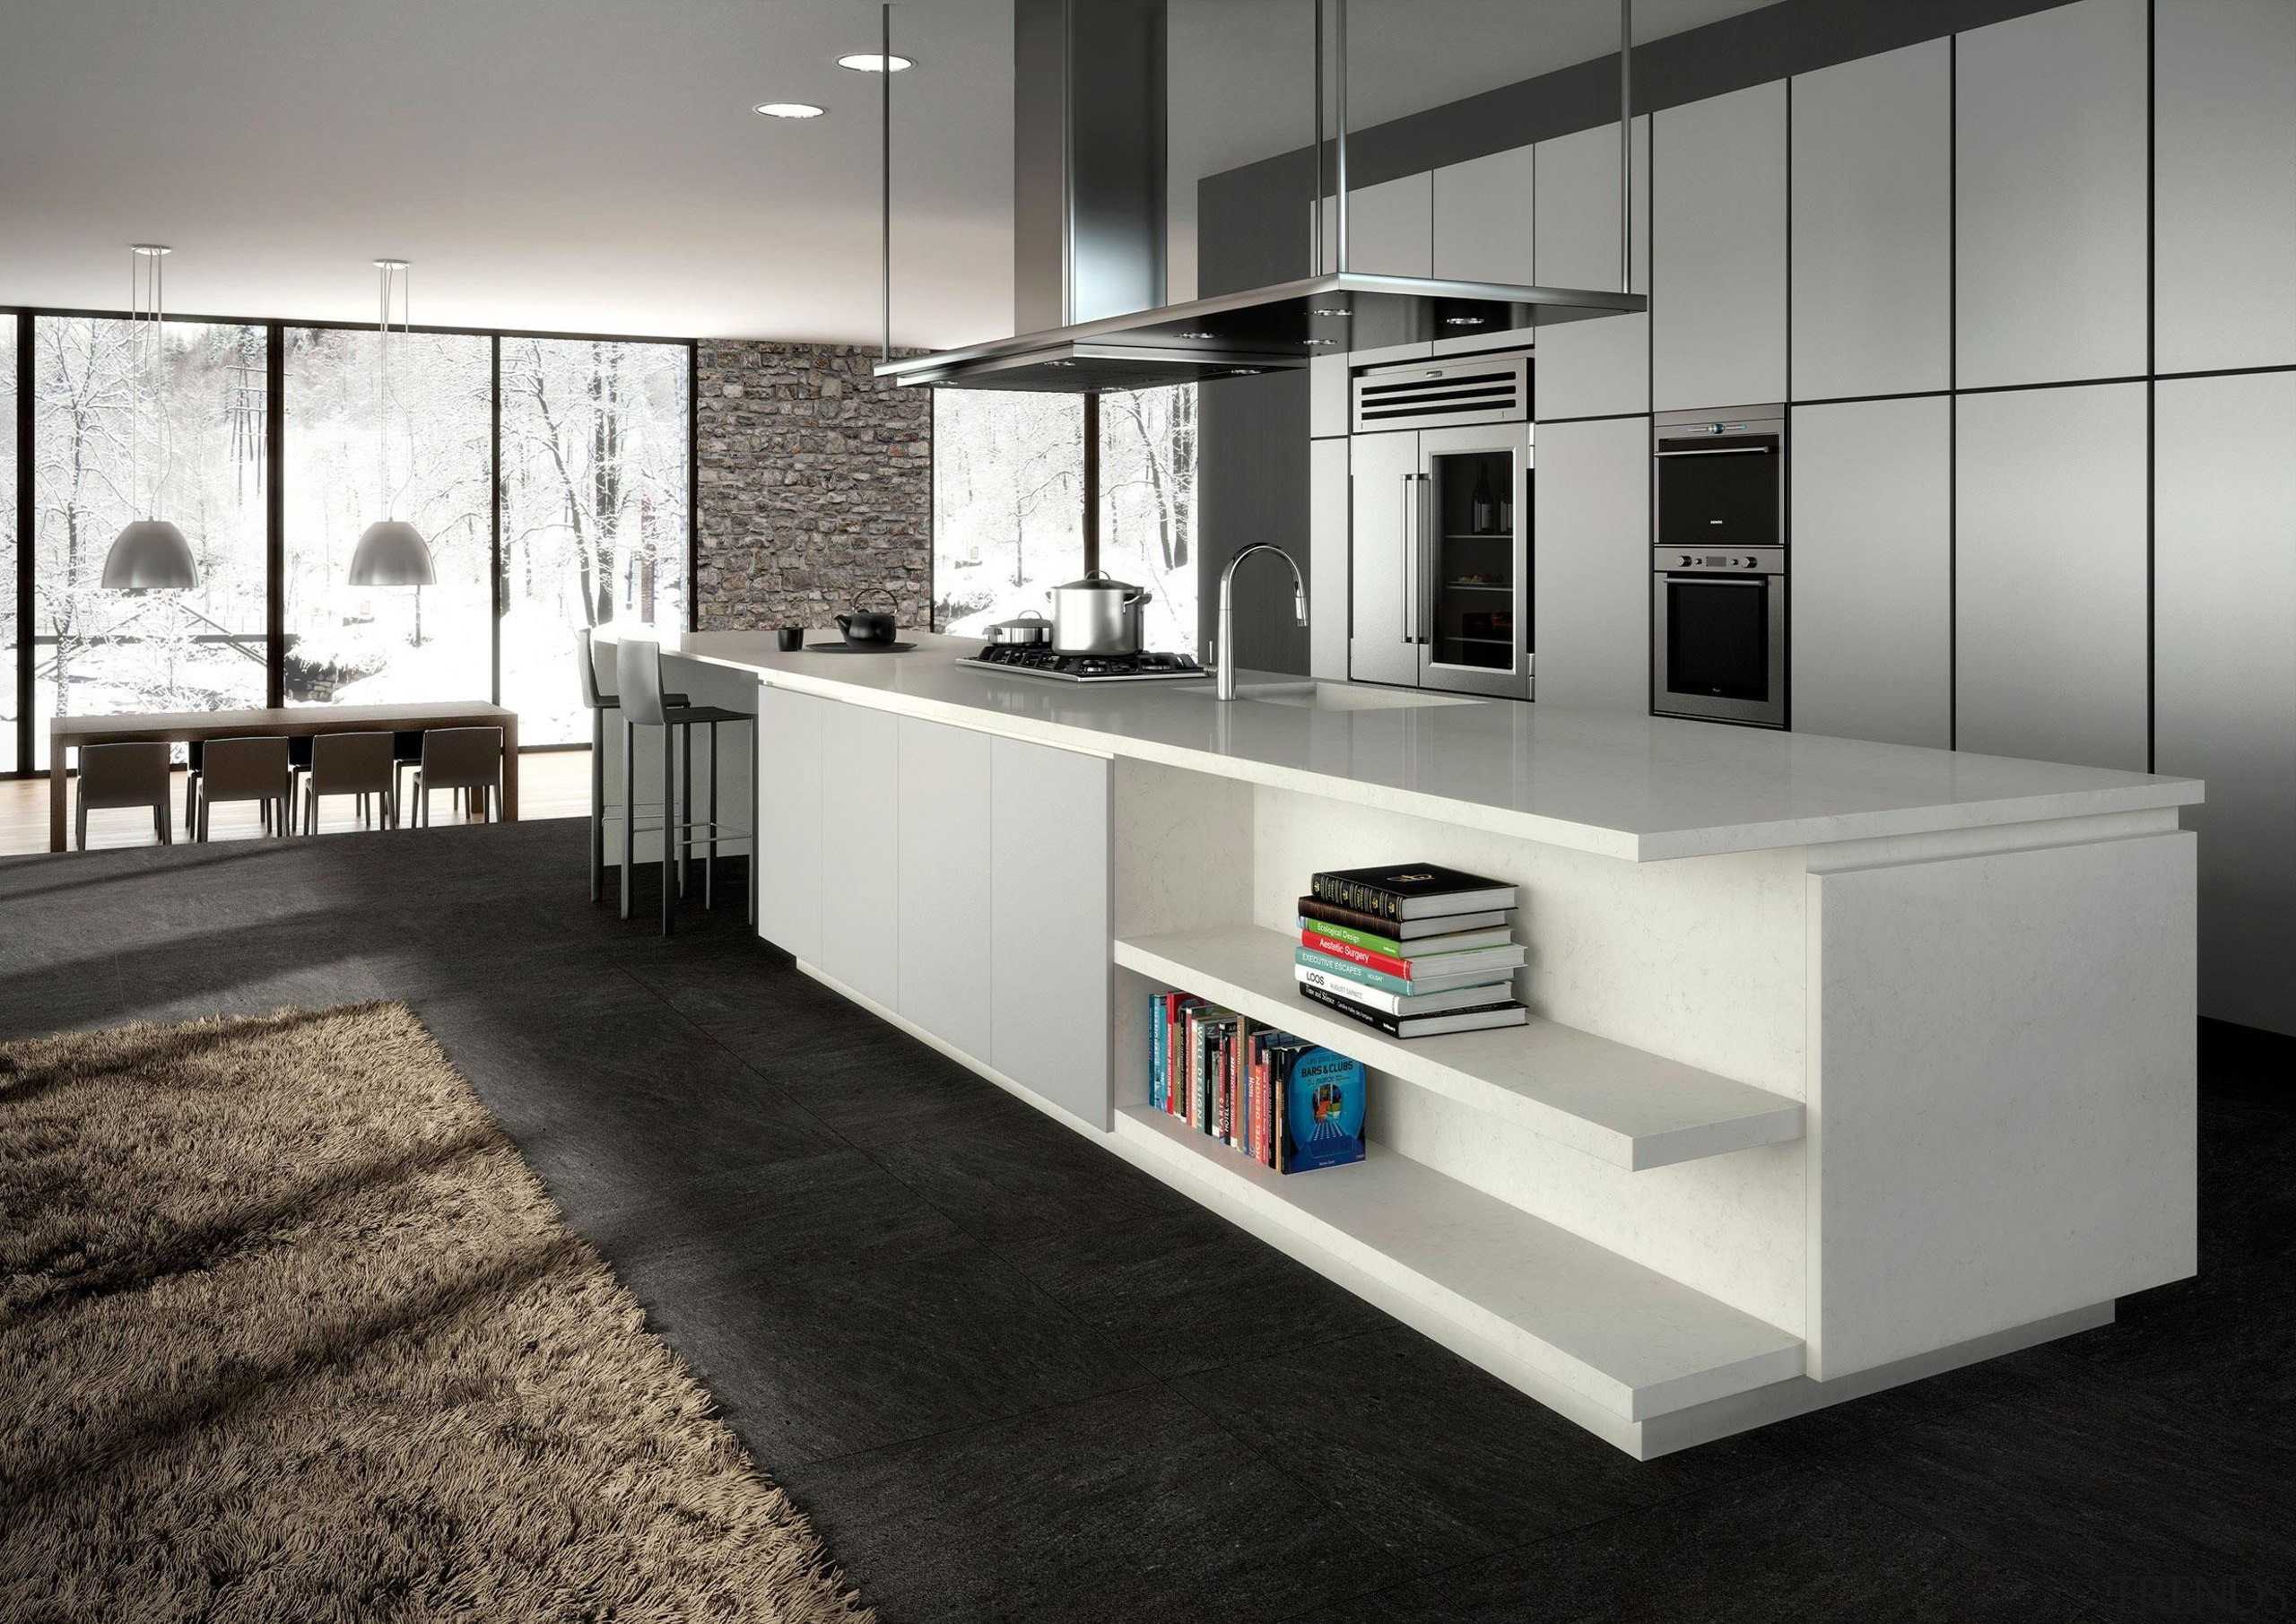 An eloquent opaque light grey with soft charcoal countertop, floor, furniture, interior design, kitchen, product design, gray, black, white